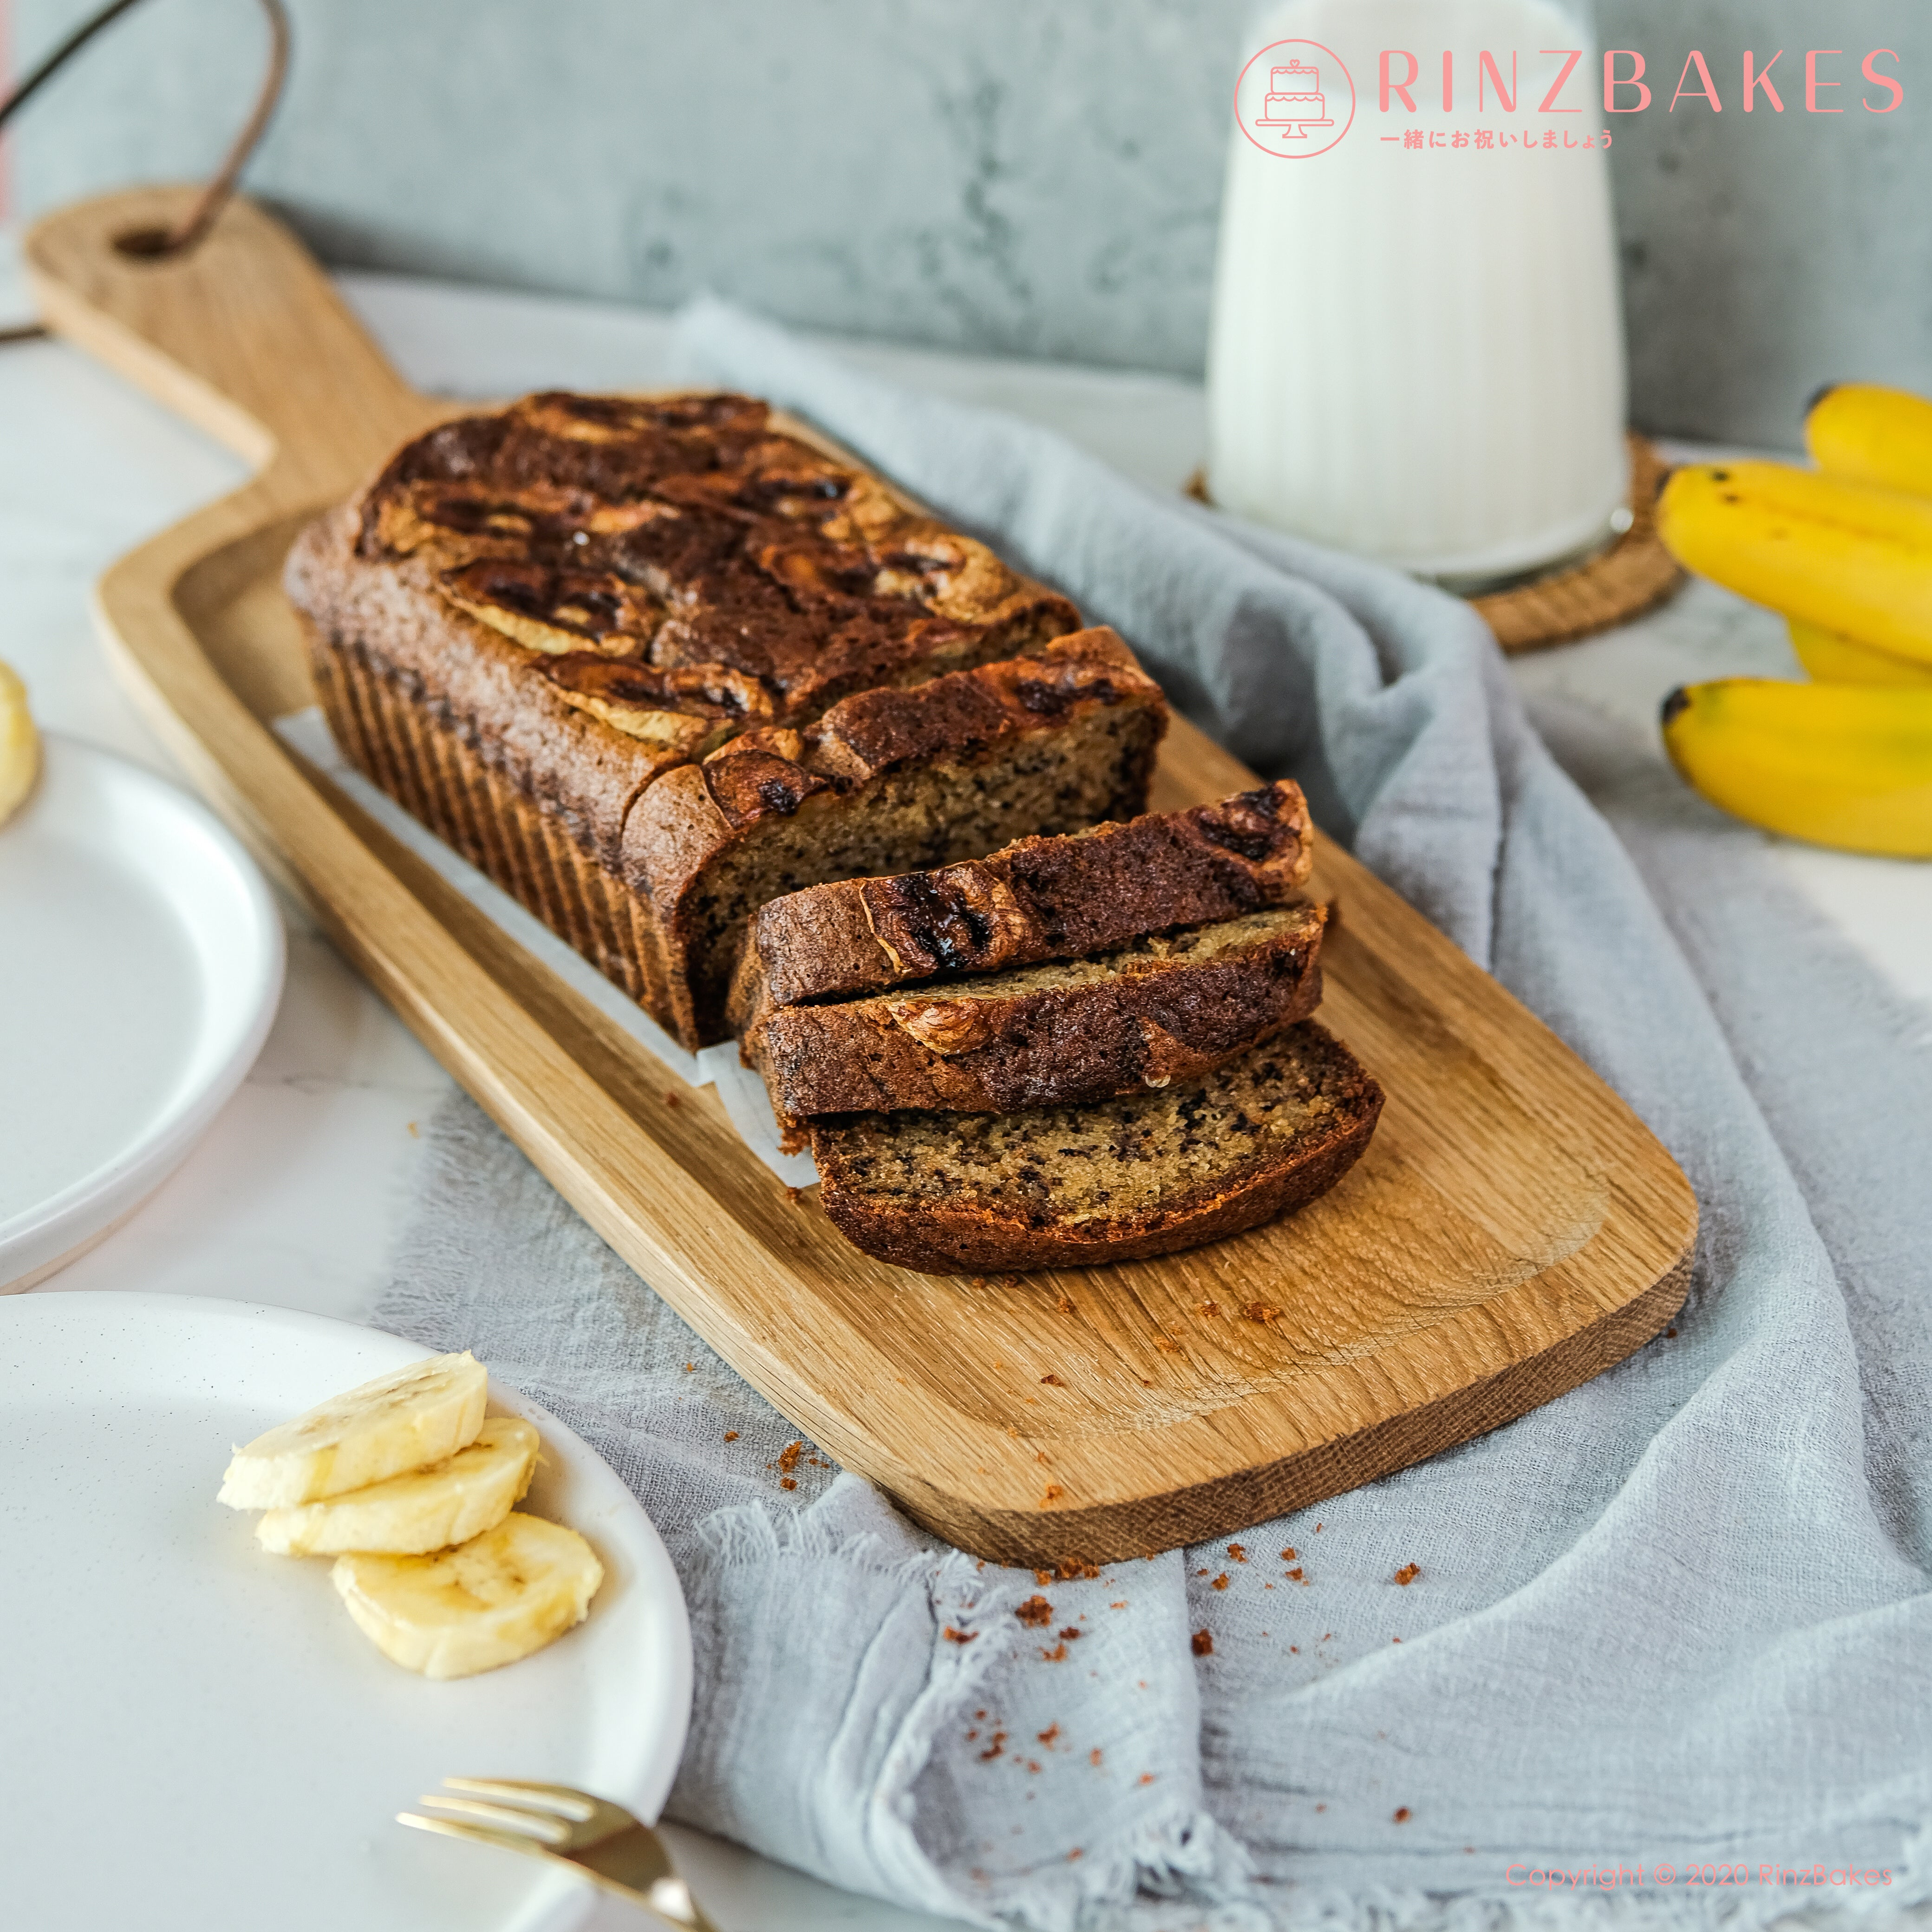 RinzBakes | Banana Loaf  | Birthday Celebration | Gathering | Delivery within Klang Valley (Kuala Lumpur & Selangor) |